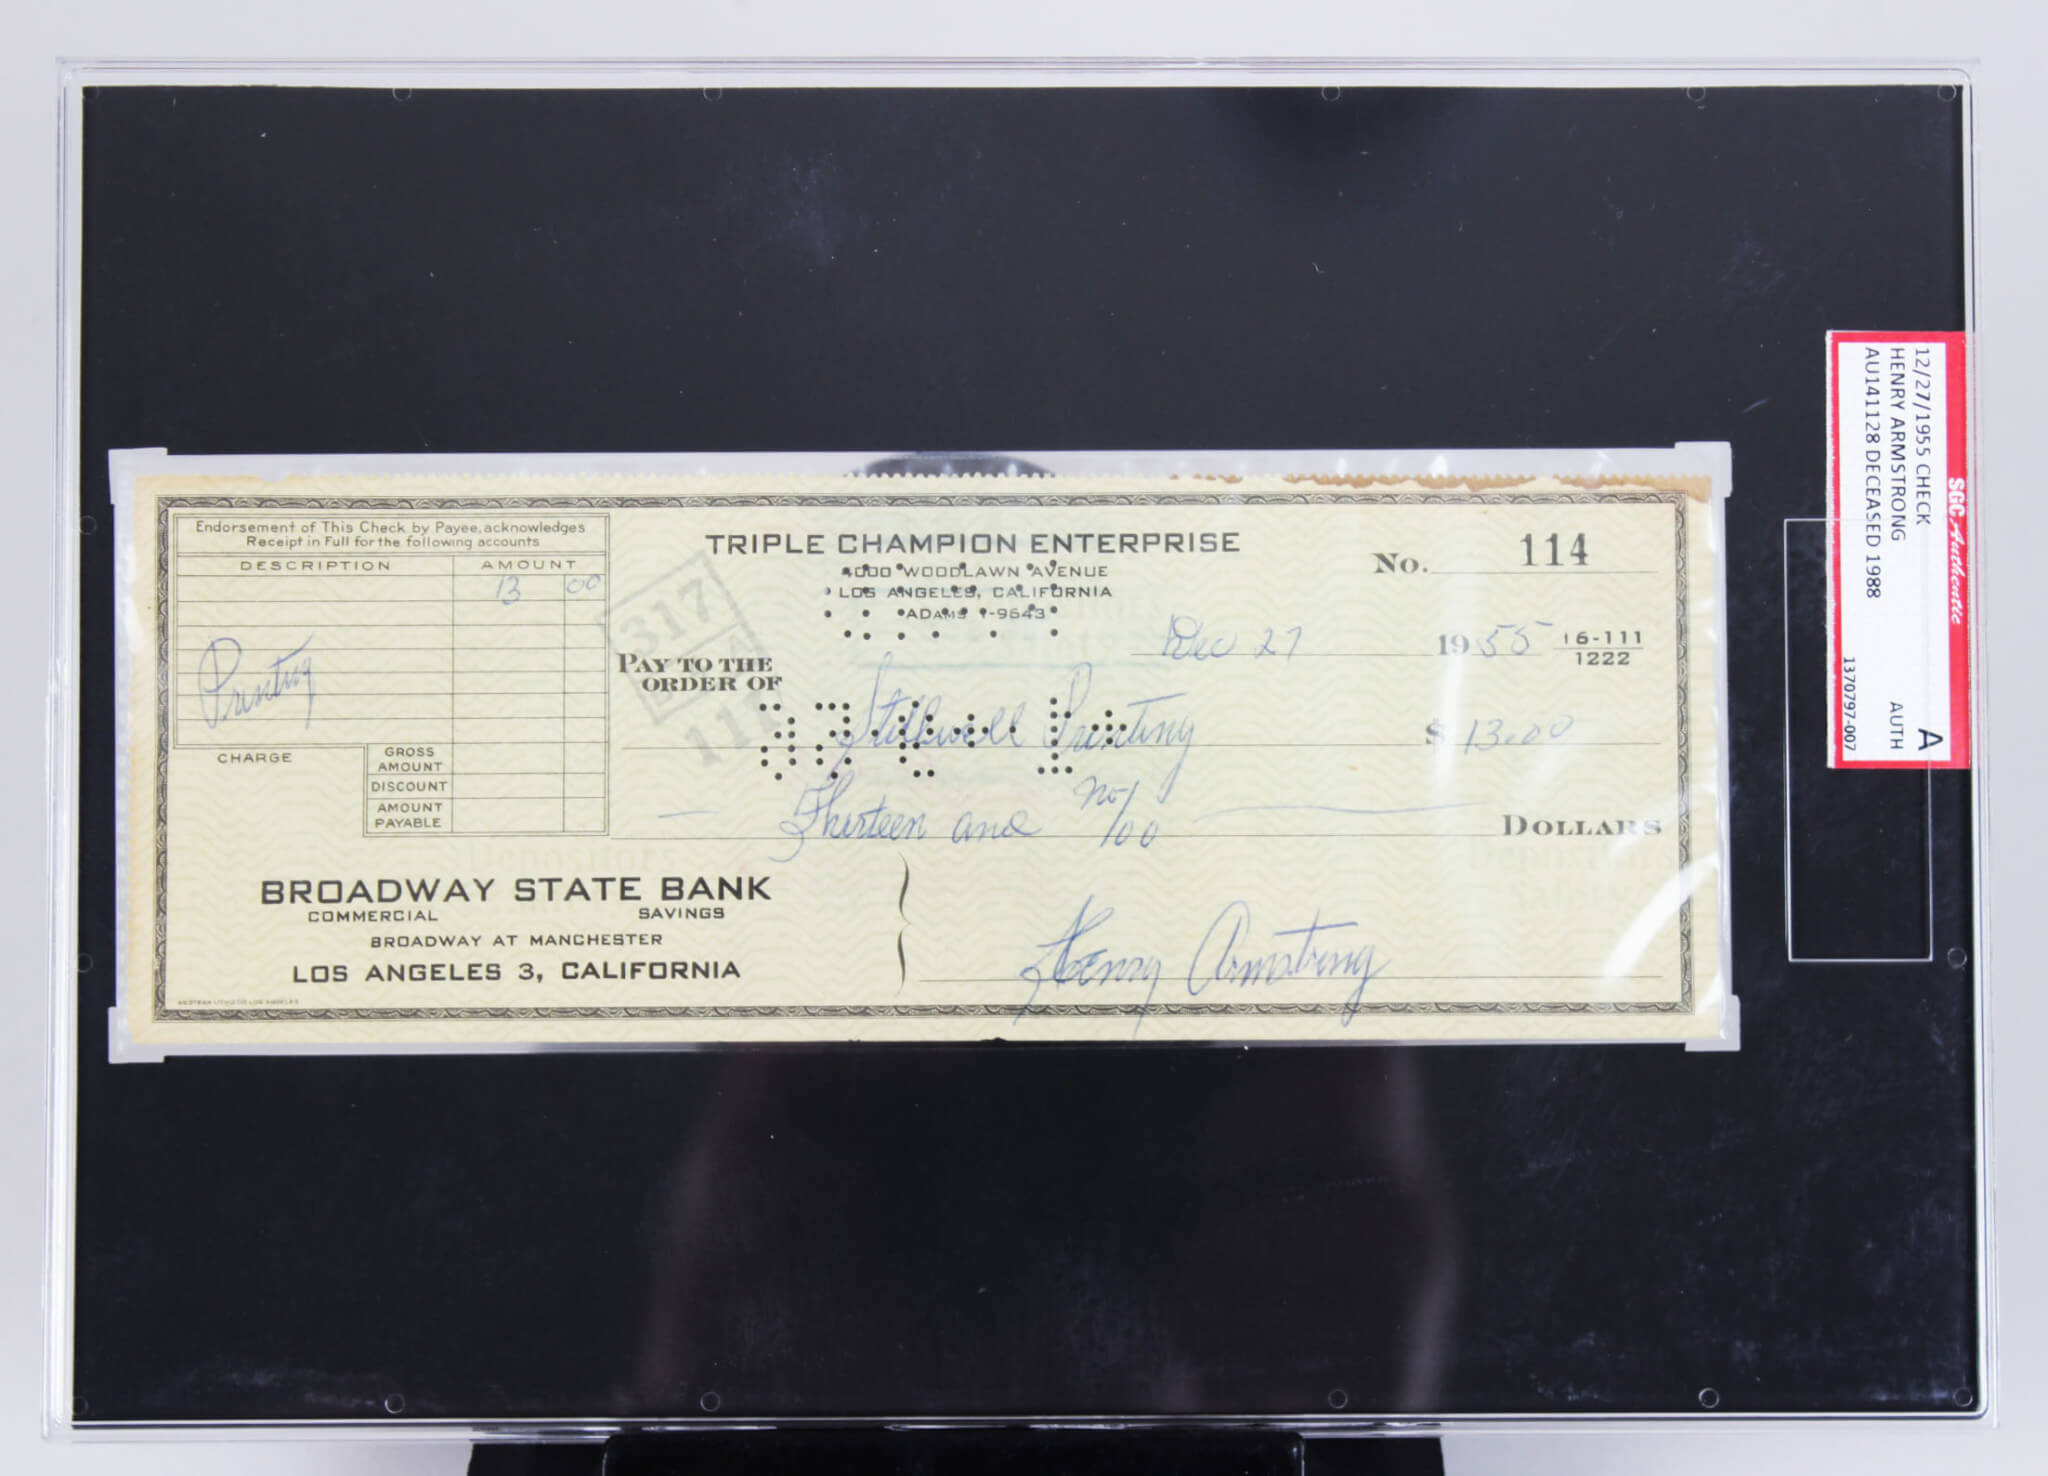 Henry Armstrong Signed Check Boxing - SGC